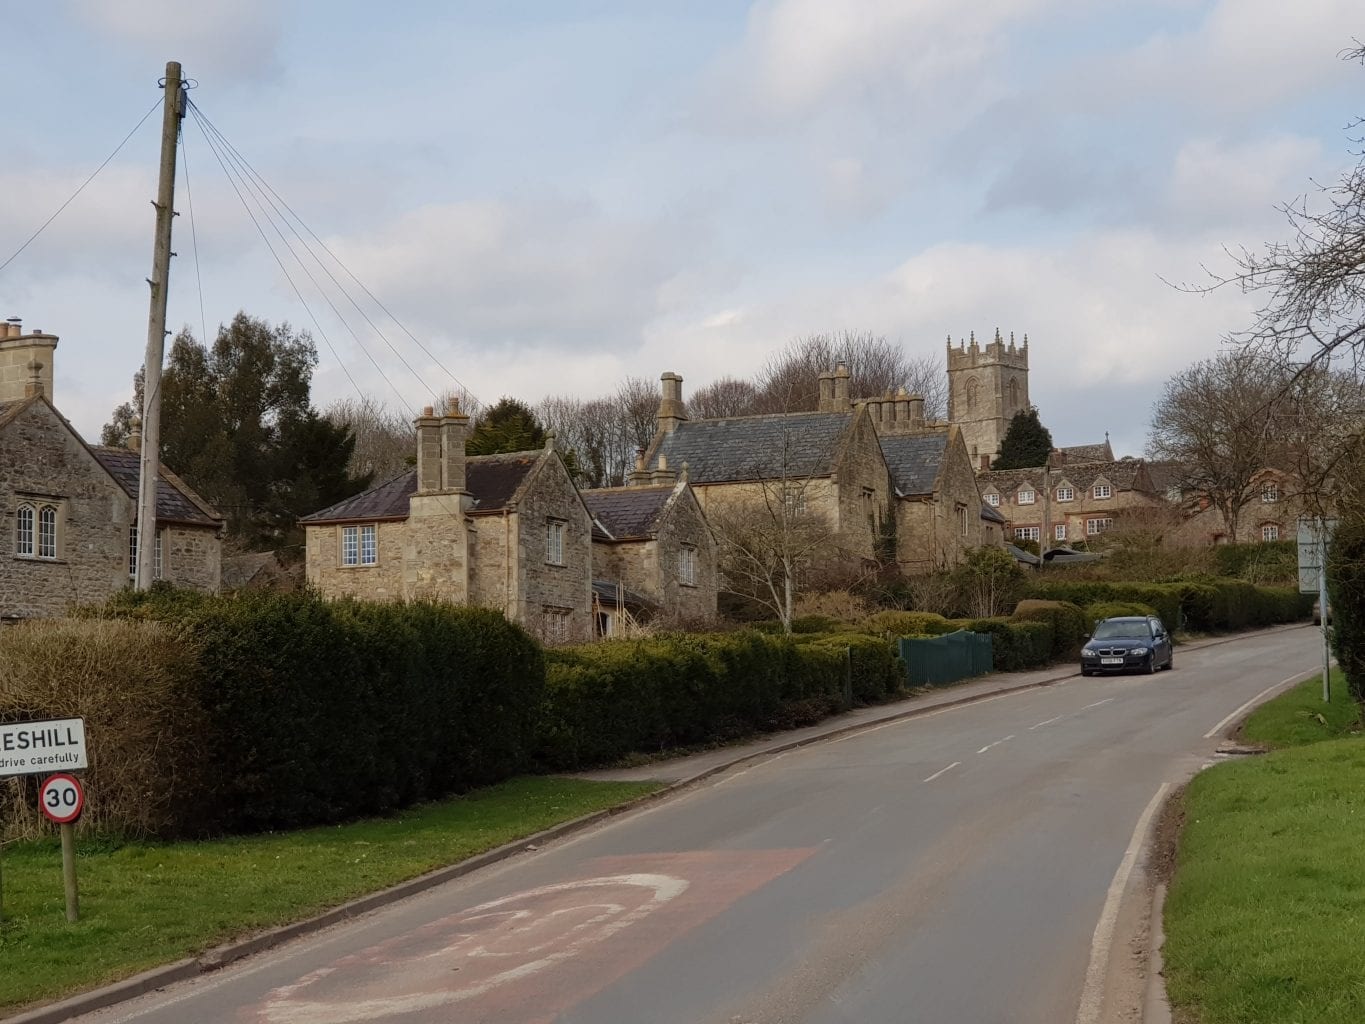 Coleshill in Oxfordshire